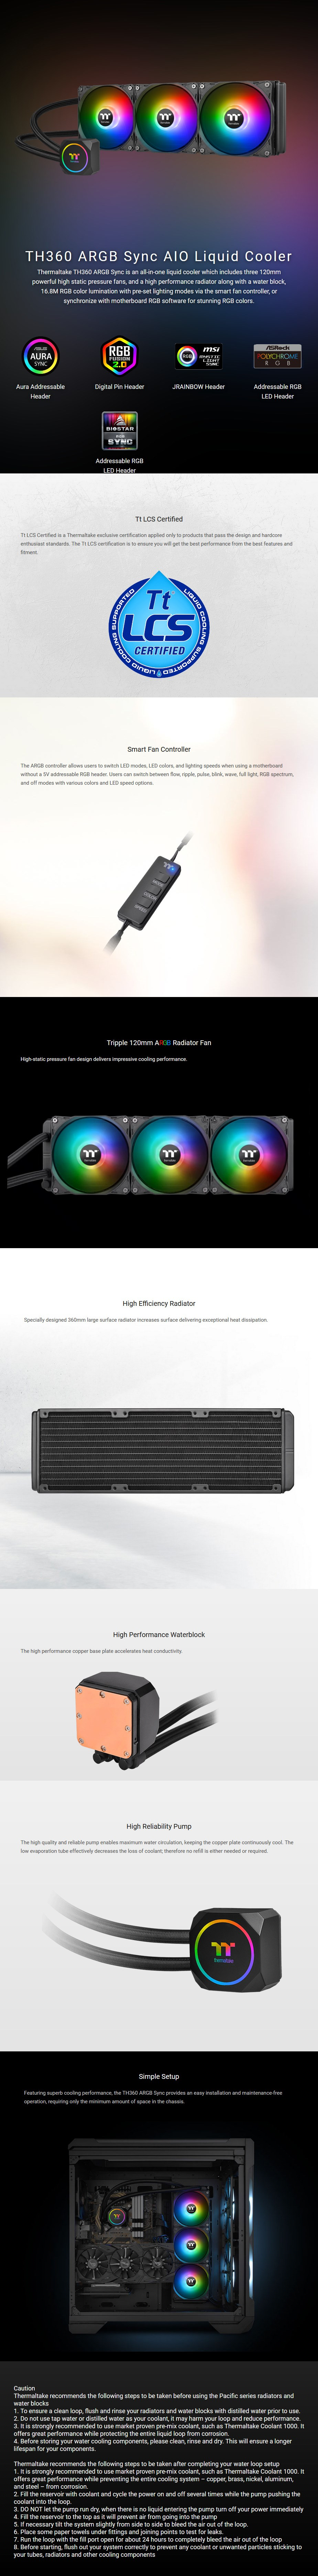 Thermaltake TH360 ARGB Sync 360mm AIO Liquid CPU Cooler - Overview 1